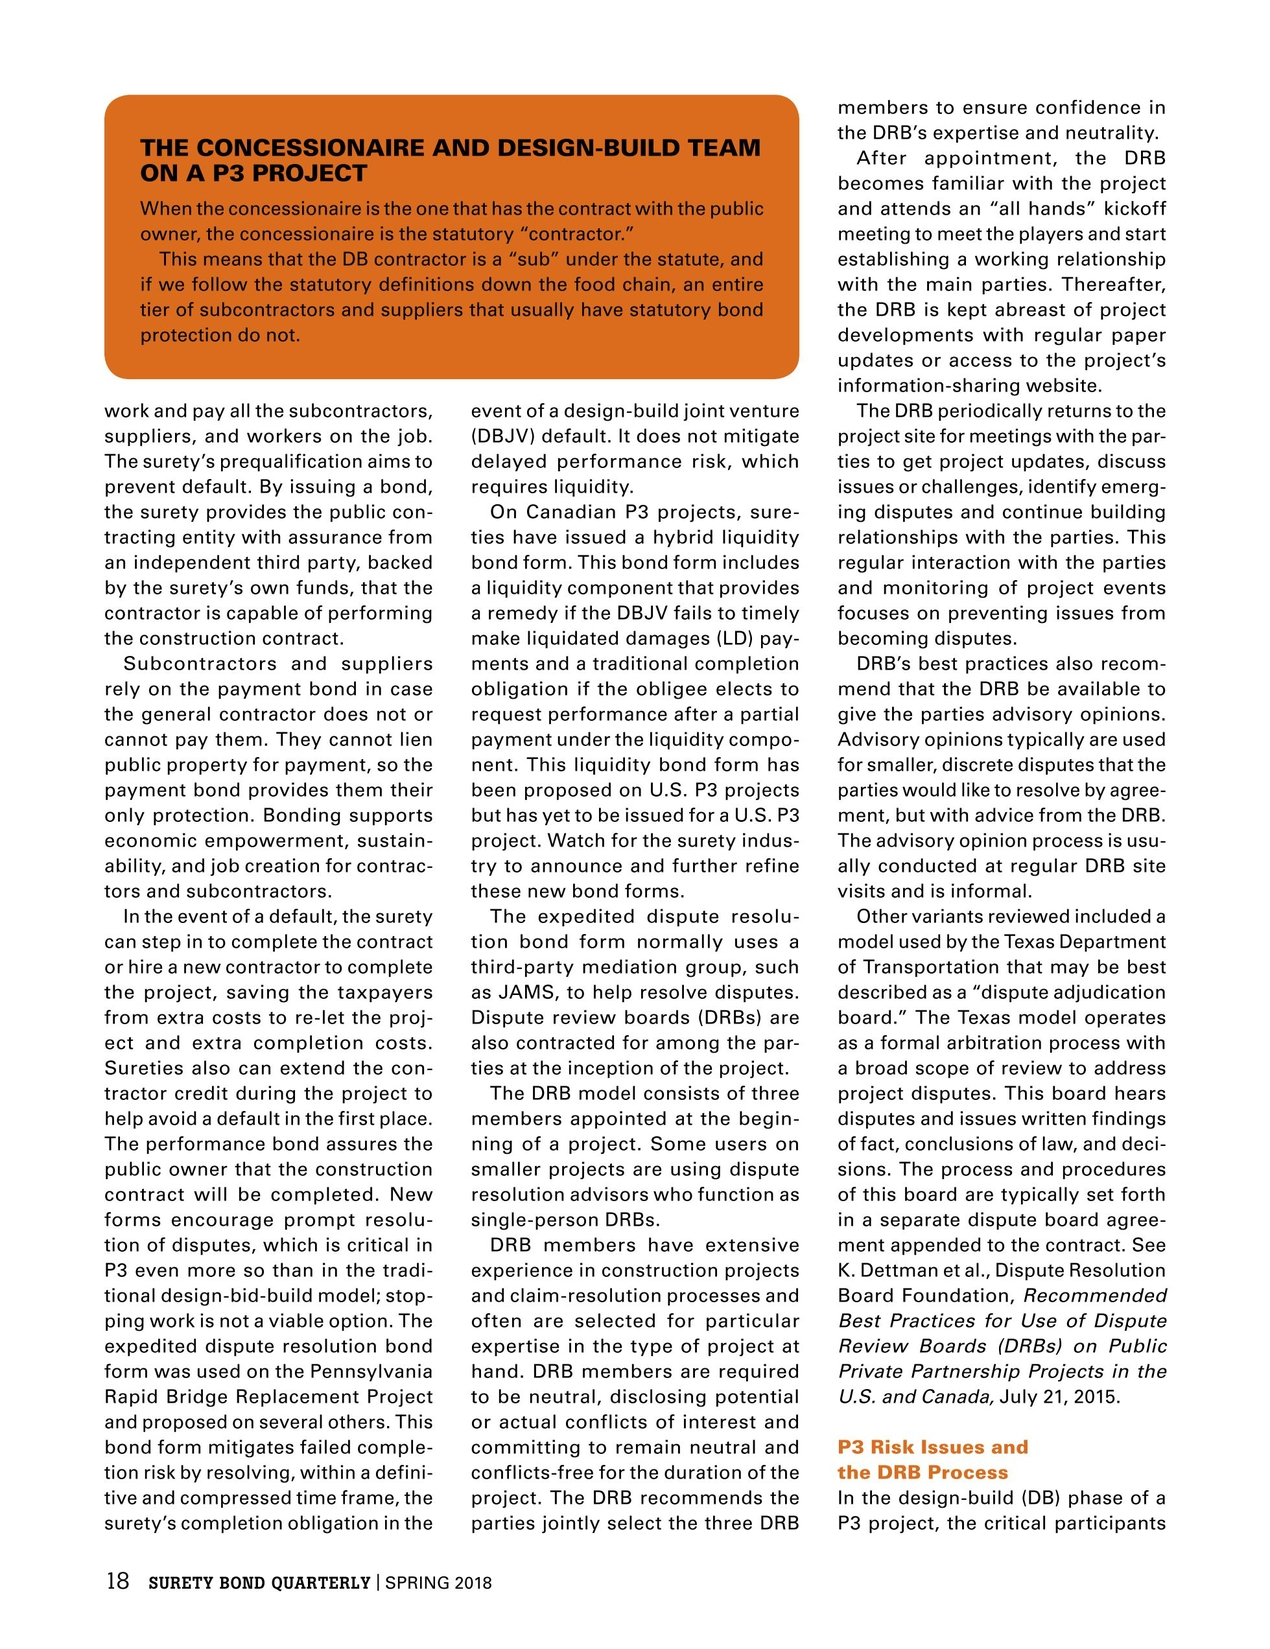 surety bond quarterly - spring 2018